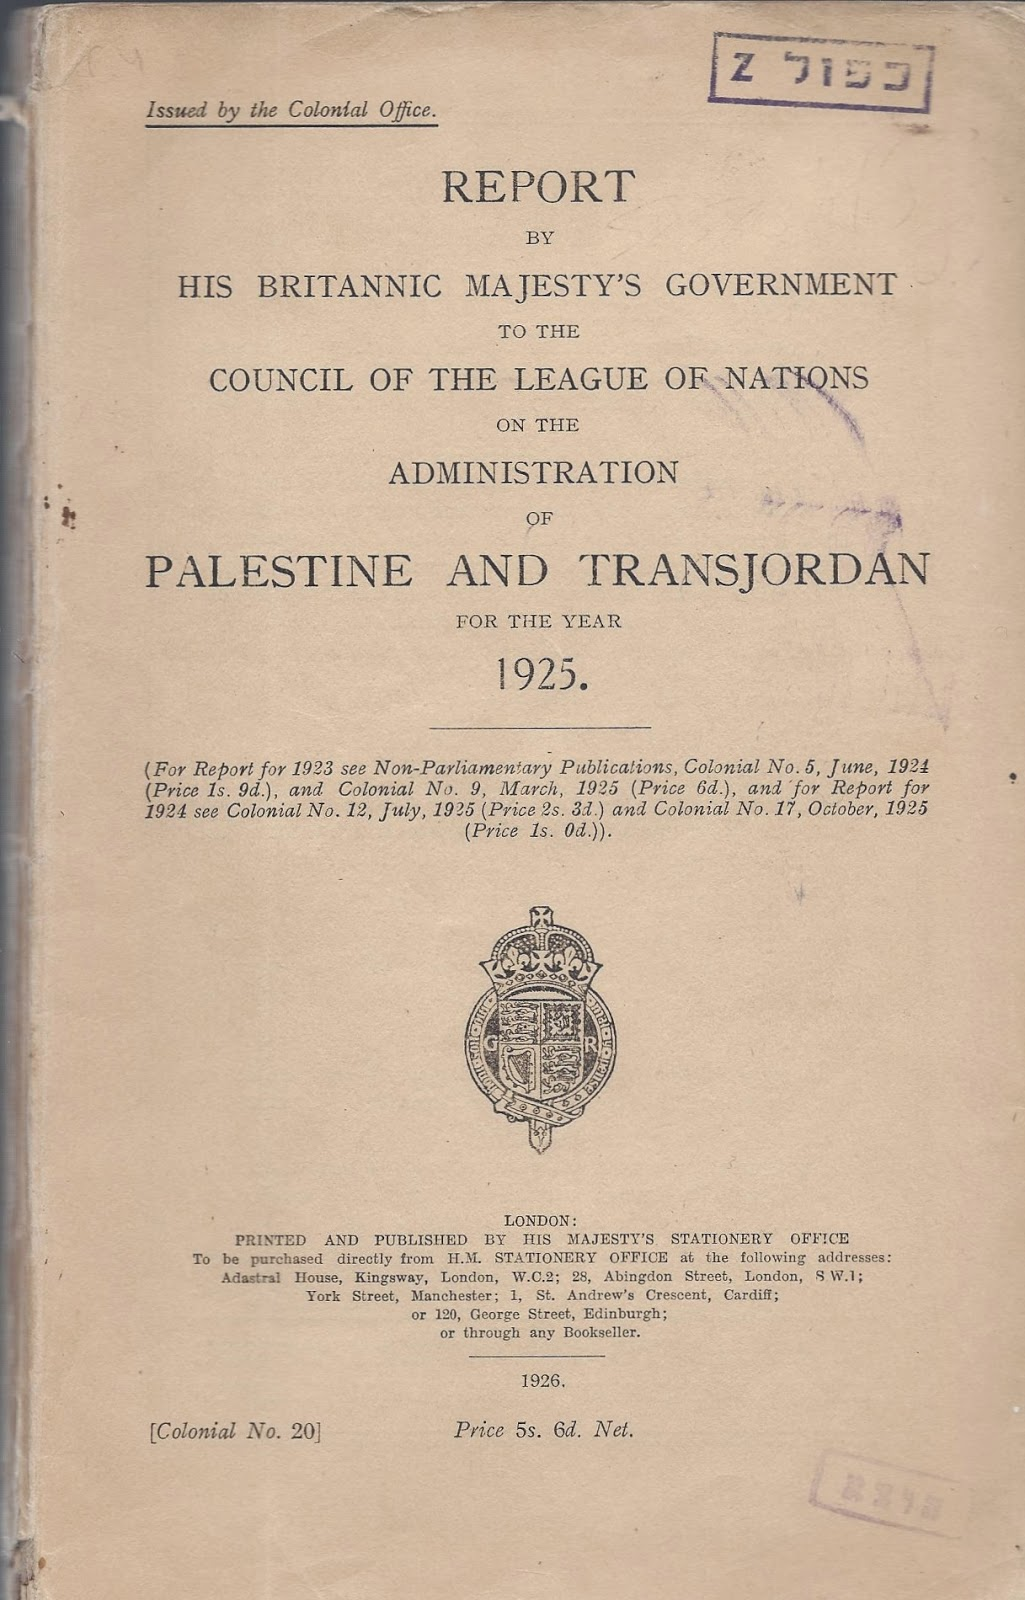 report by his britanic majesty s government to the council of the league of nations on the administration of palestine and trans jordan for the year 1925